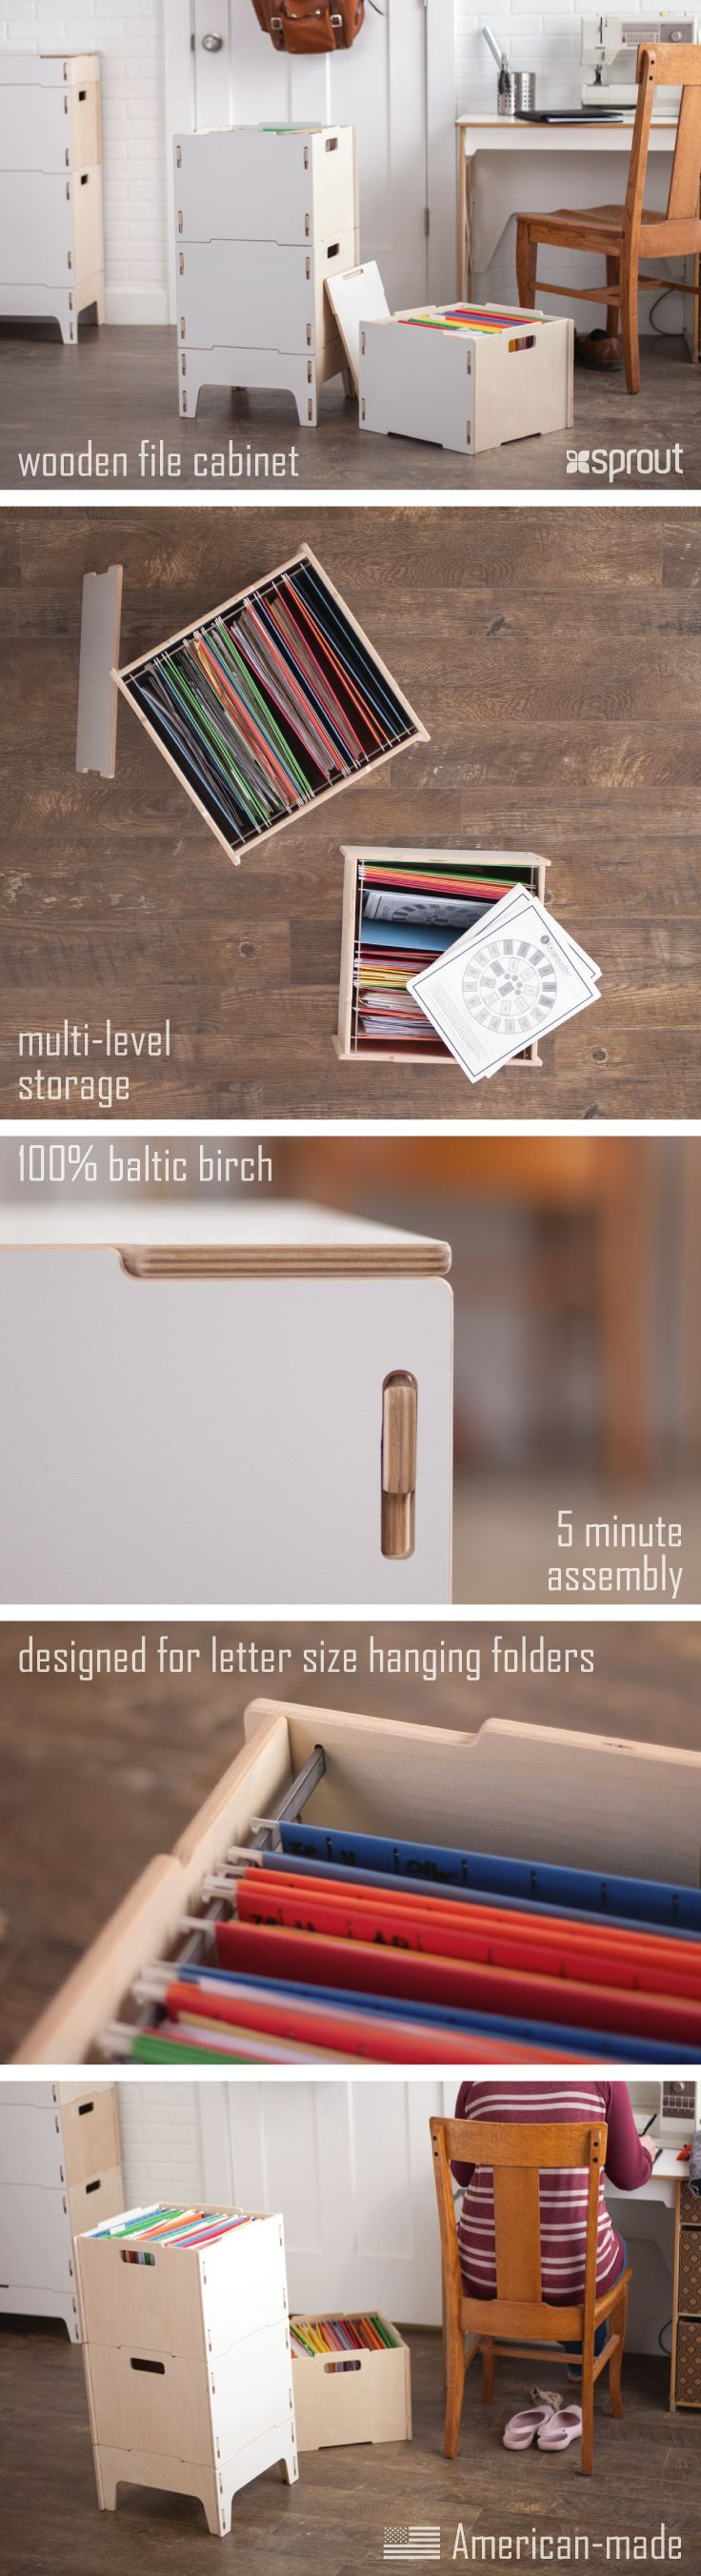 Sprout's white filing cabinet comes with modular file boxes that can stack for multi-level, space saving storage. With lightweight 100% Baltic birch construction, the hanging file boxes are easy to move and use as needed. Learn more about the wooden filing cabinets at Sprout.